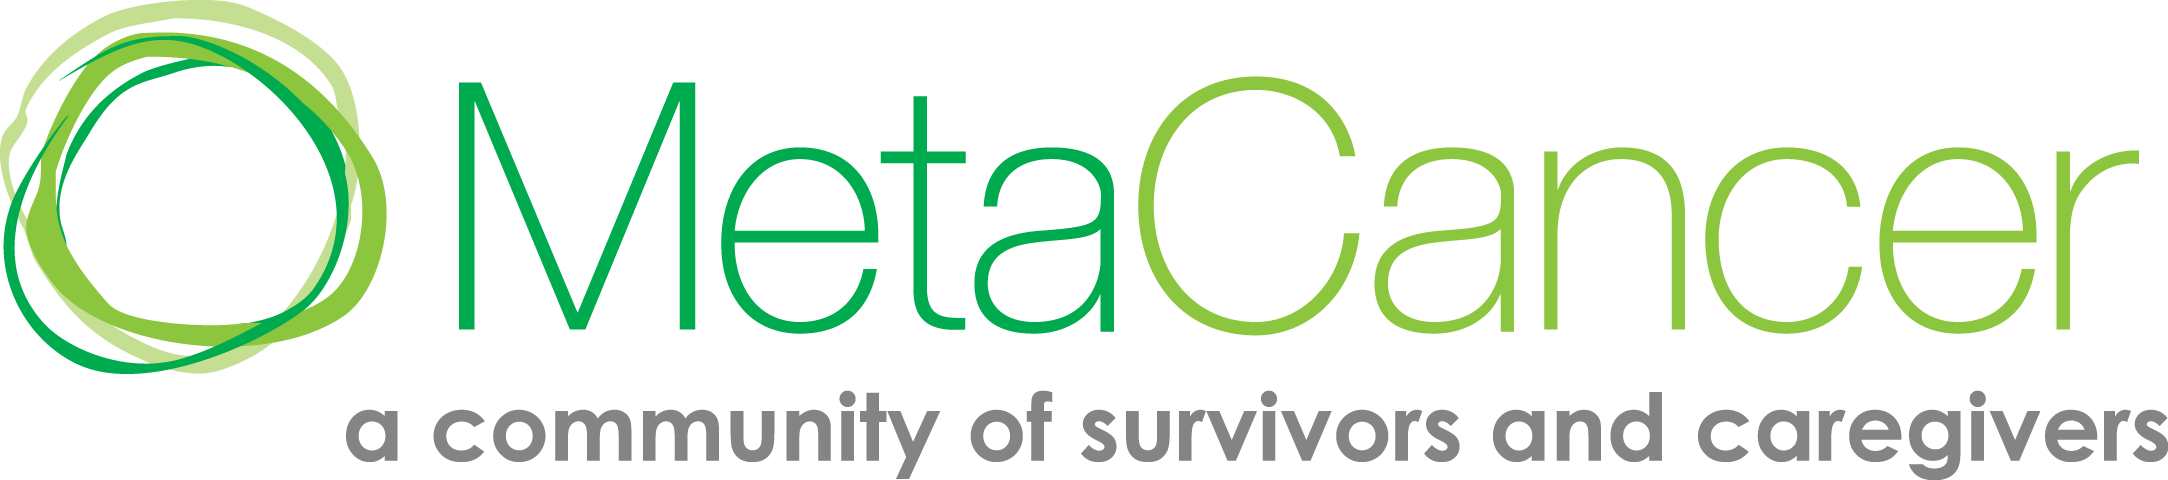 The MetaCancer Foundation